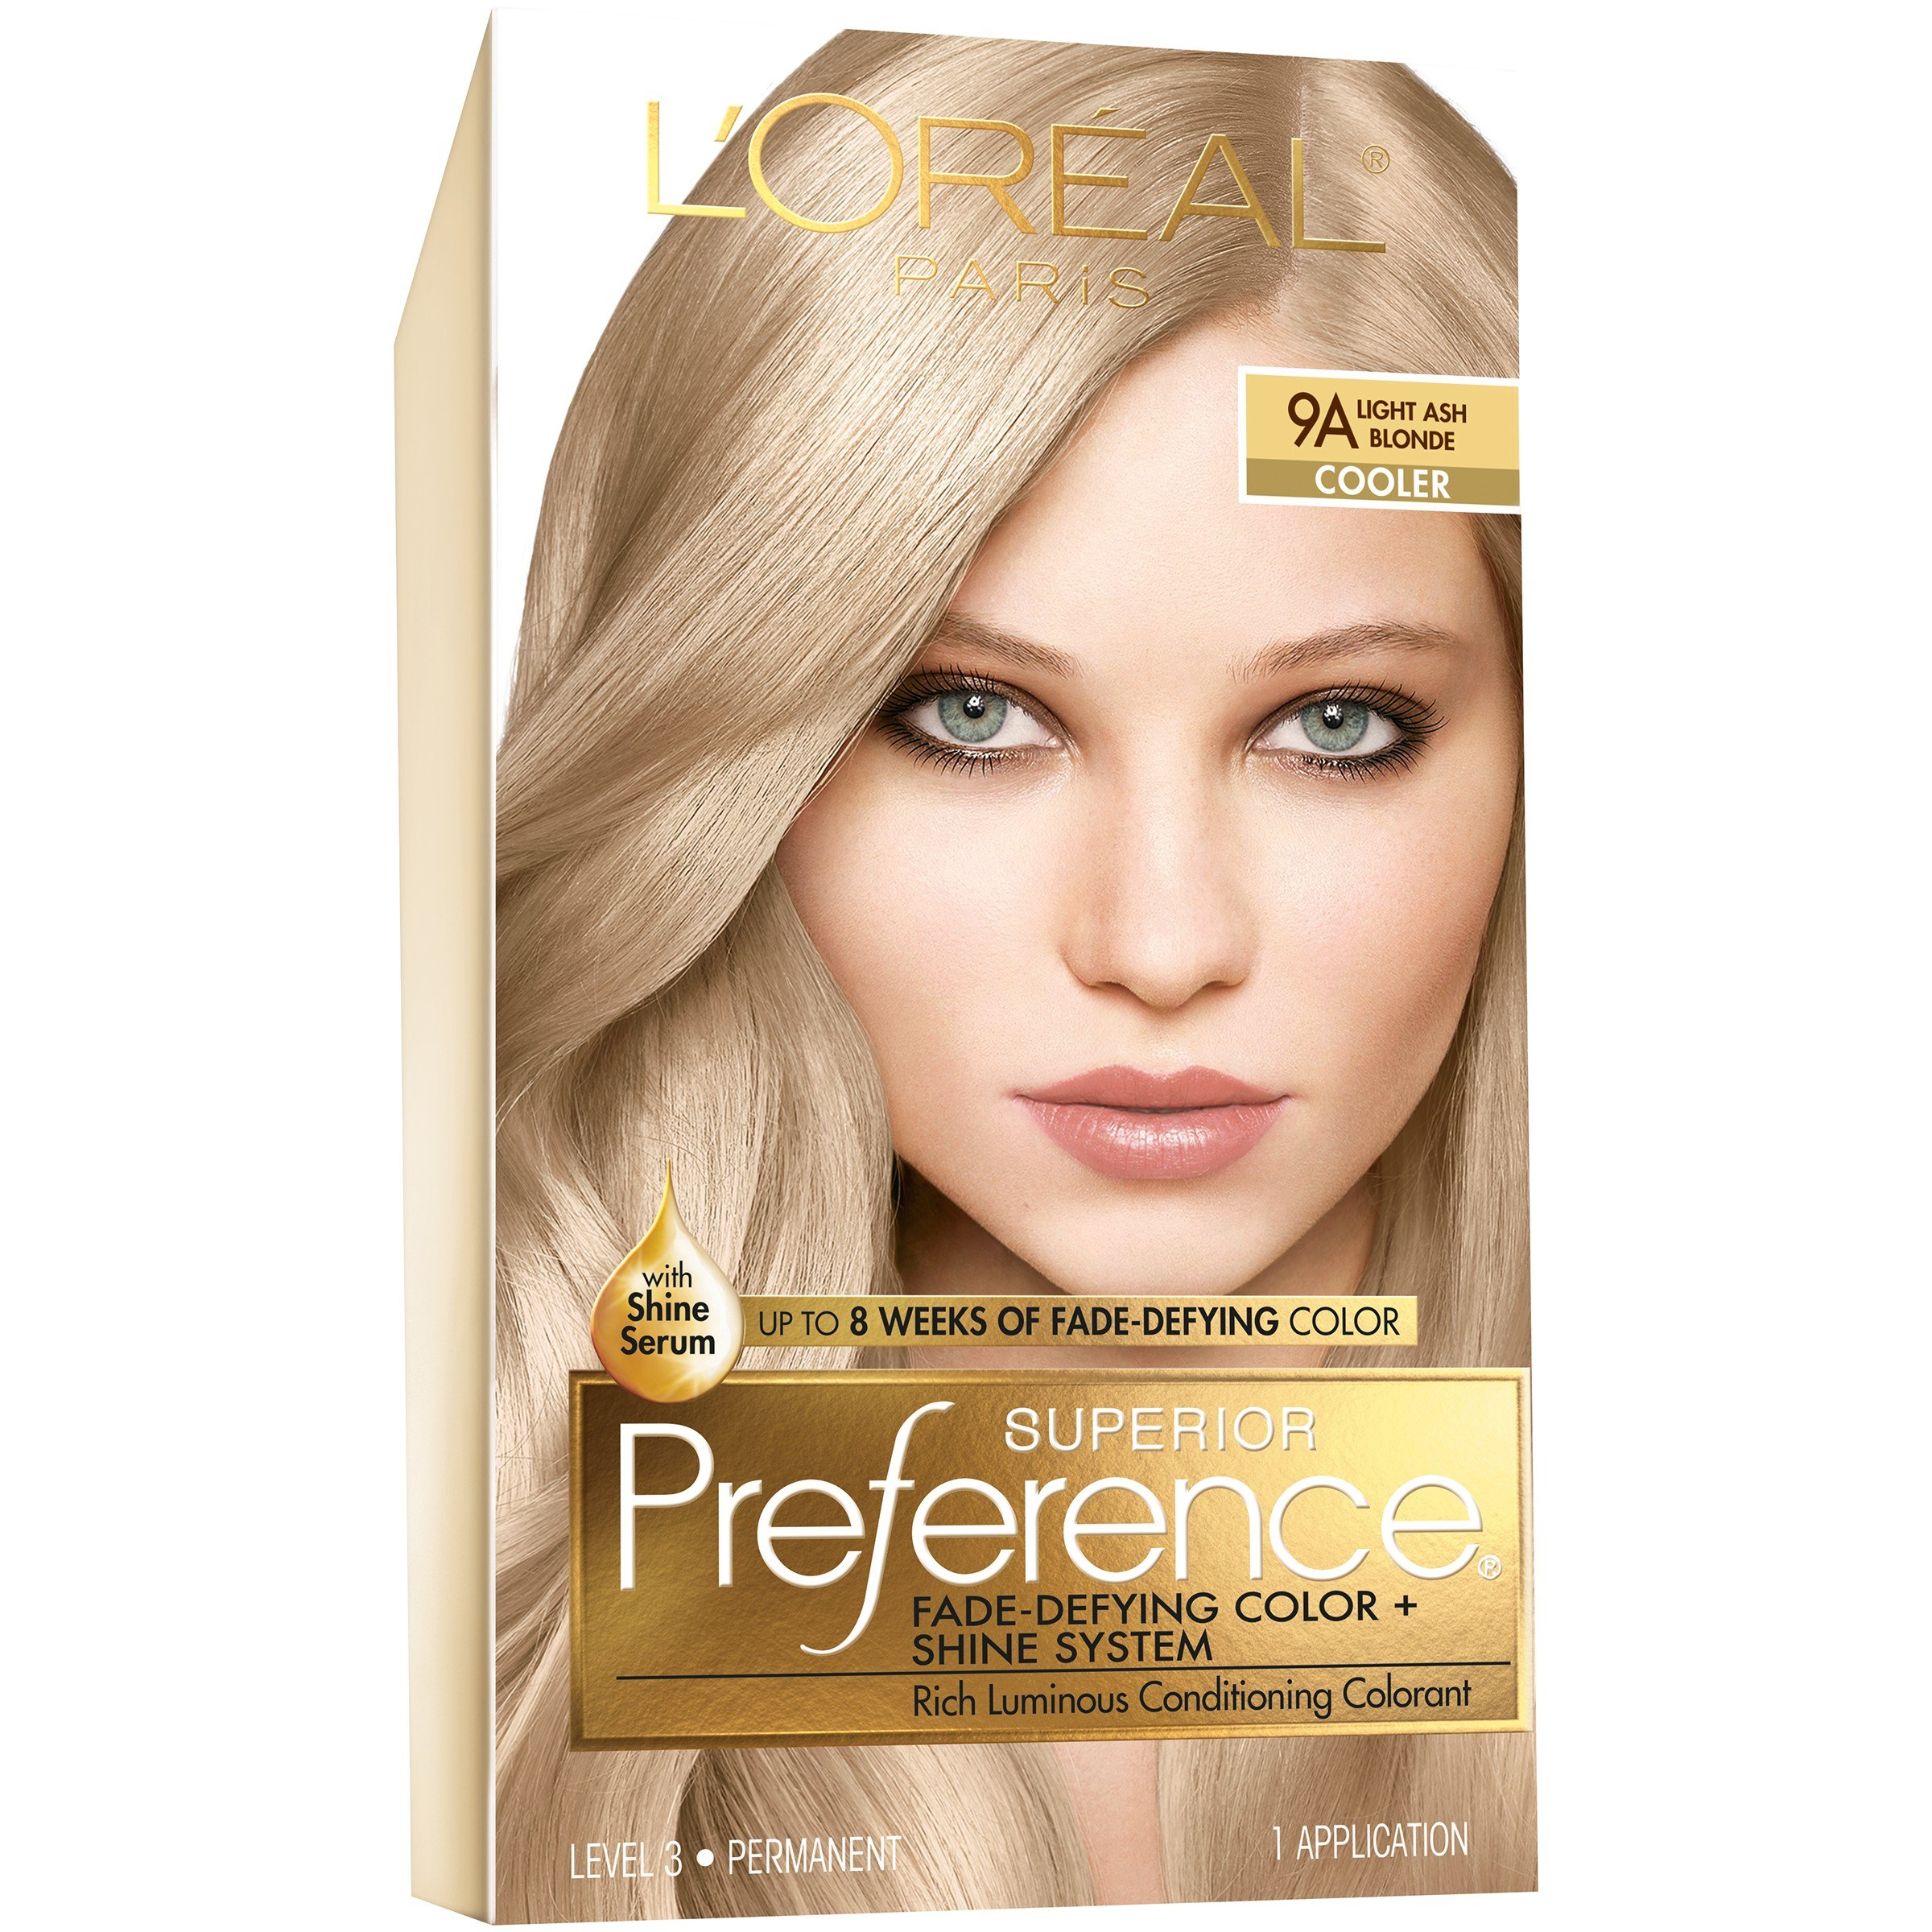 The Best L Oreal 9A Cooler Light Ash Blonde Hair Color 1 Kt Box Pictures